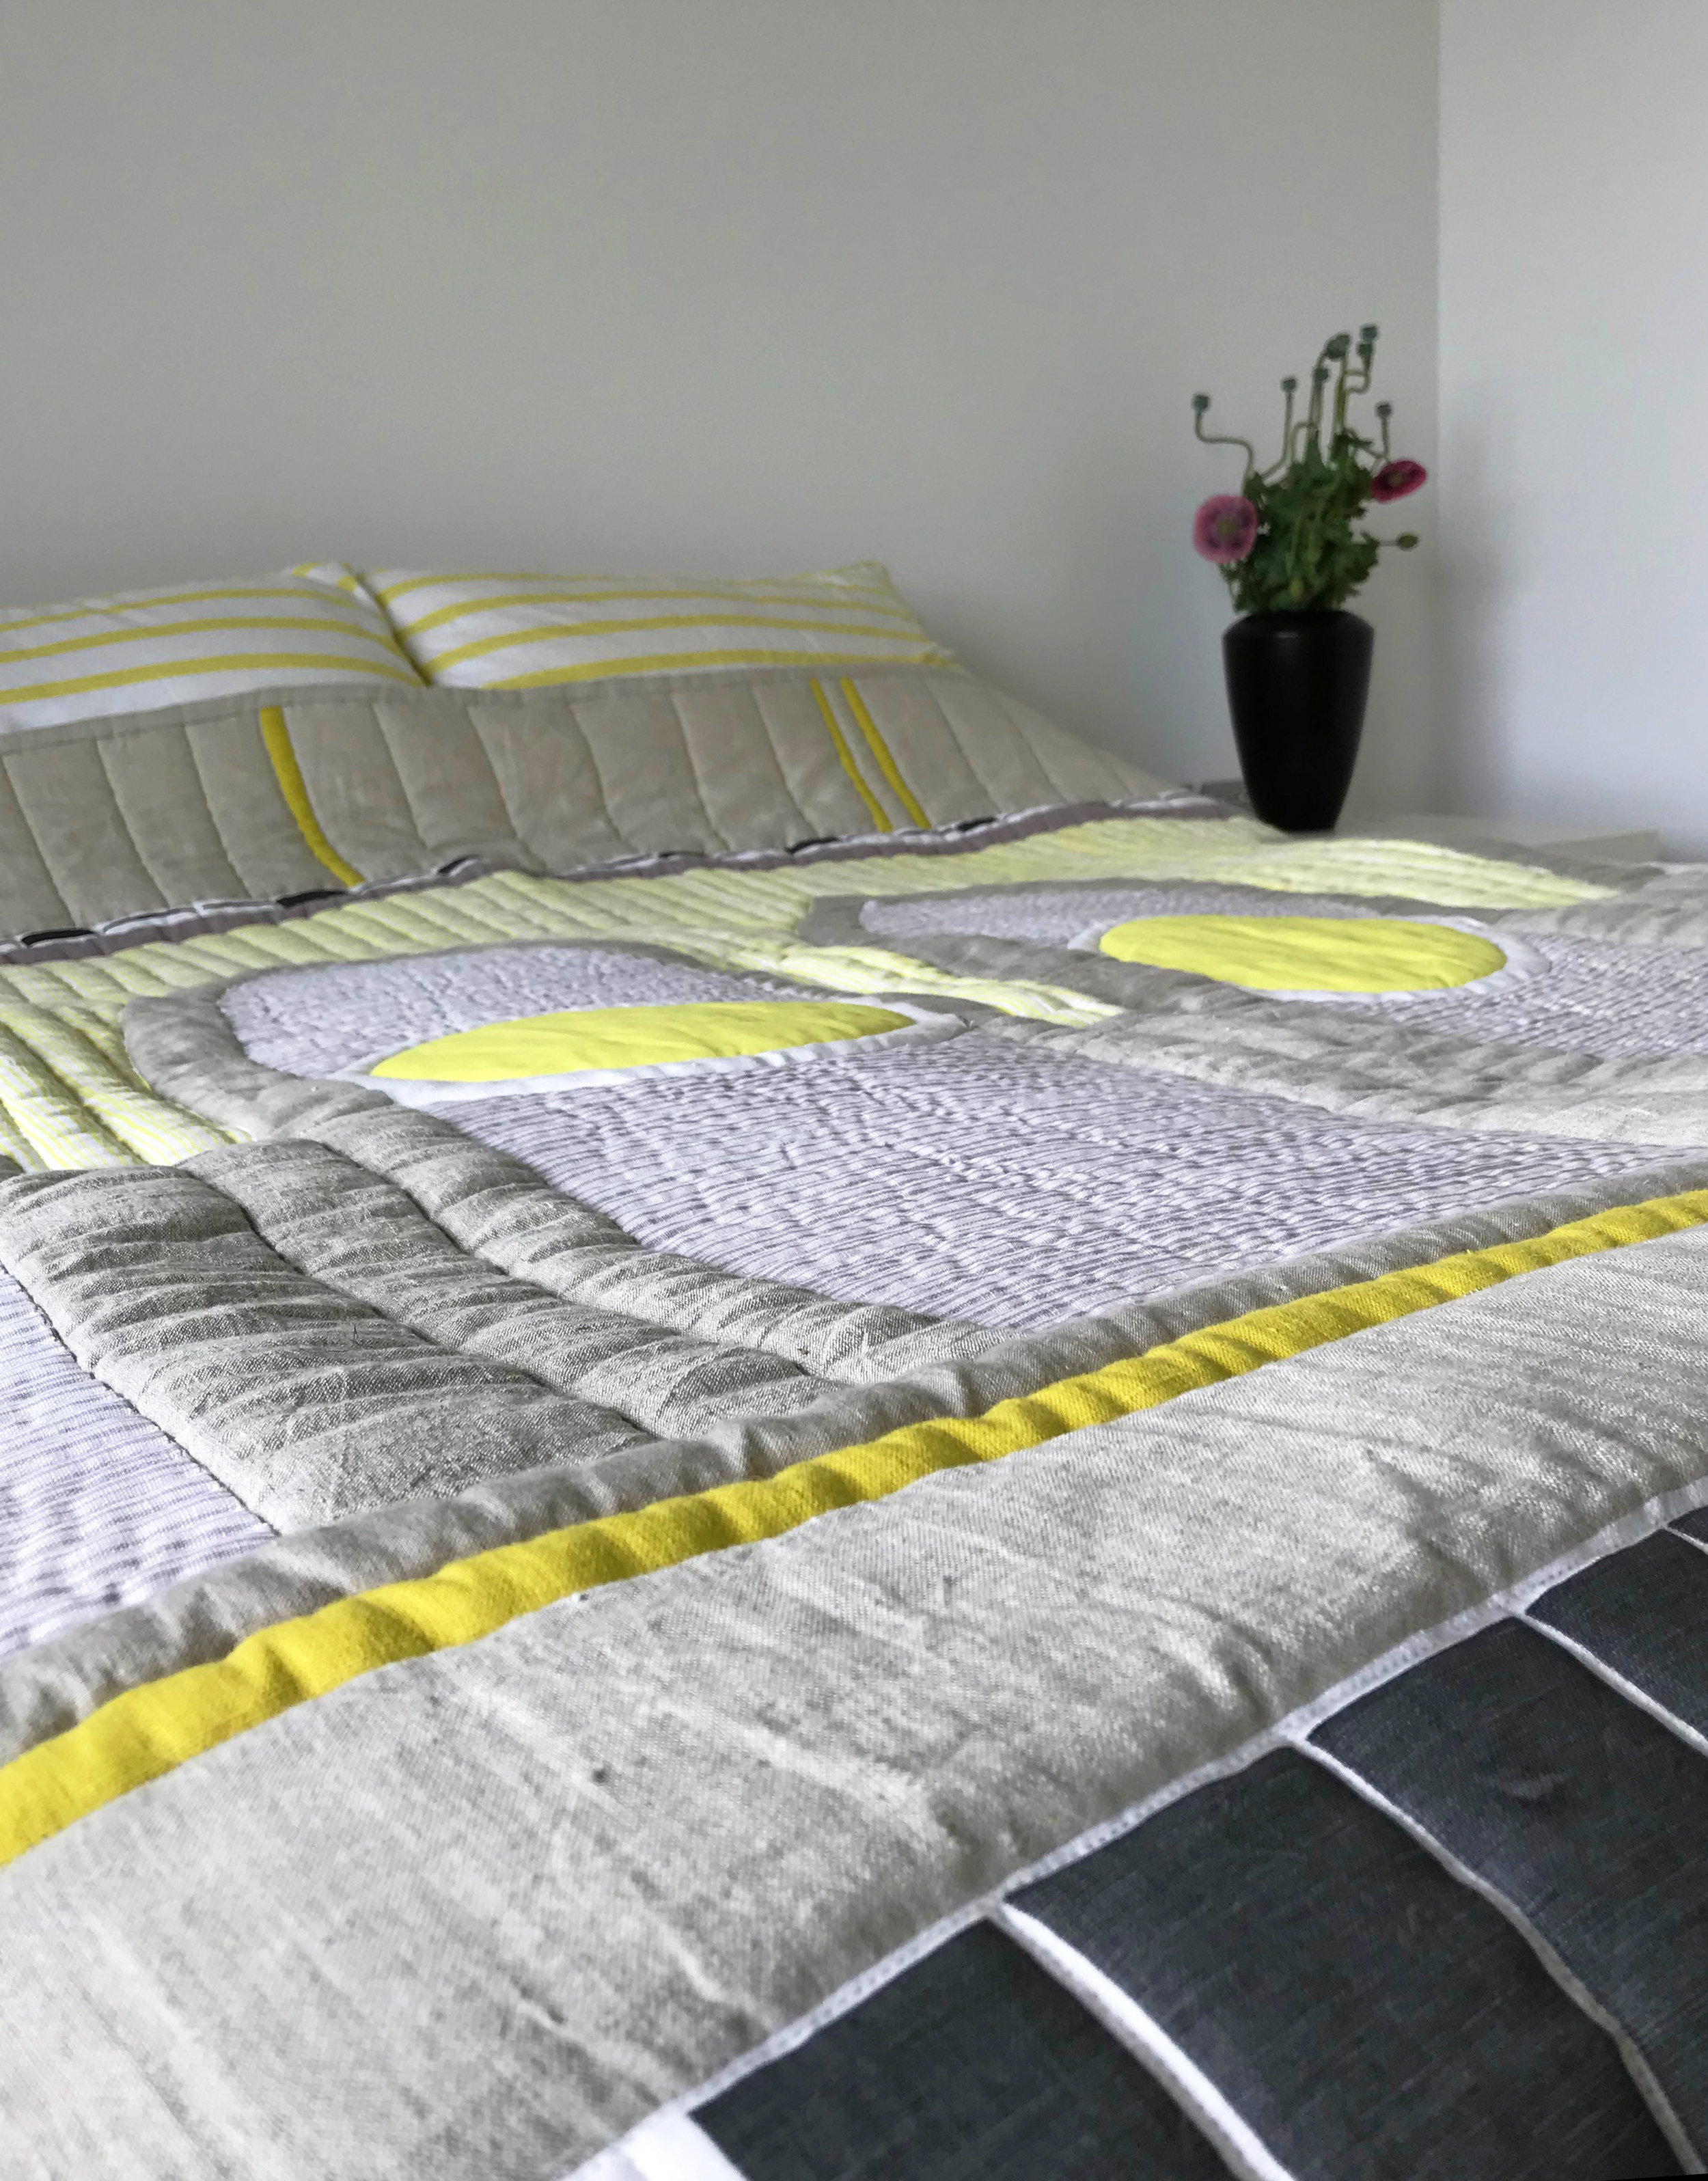 arches quilt on bed 4.jpg